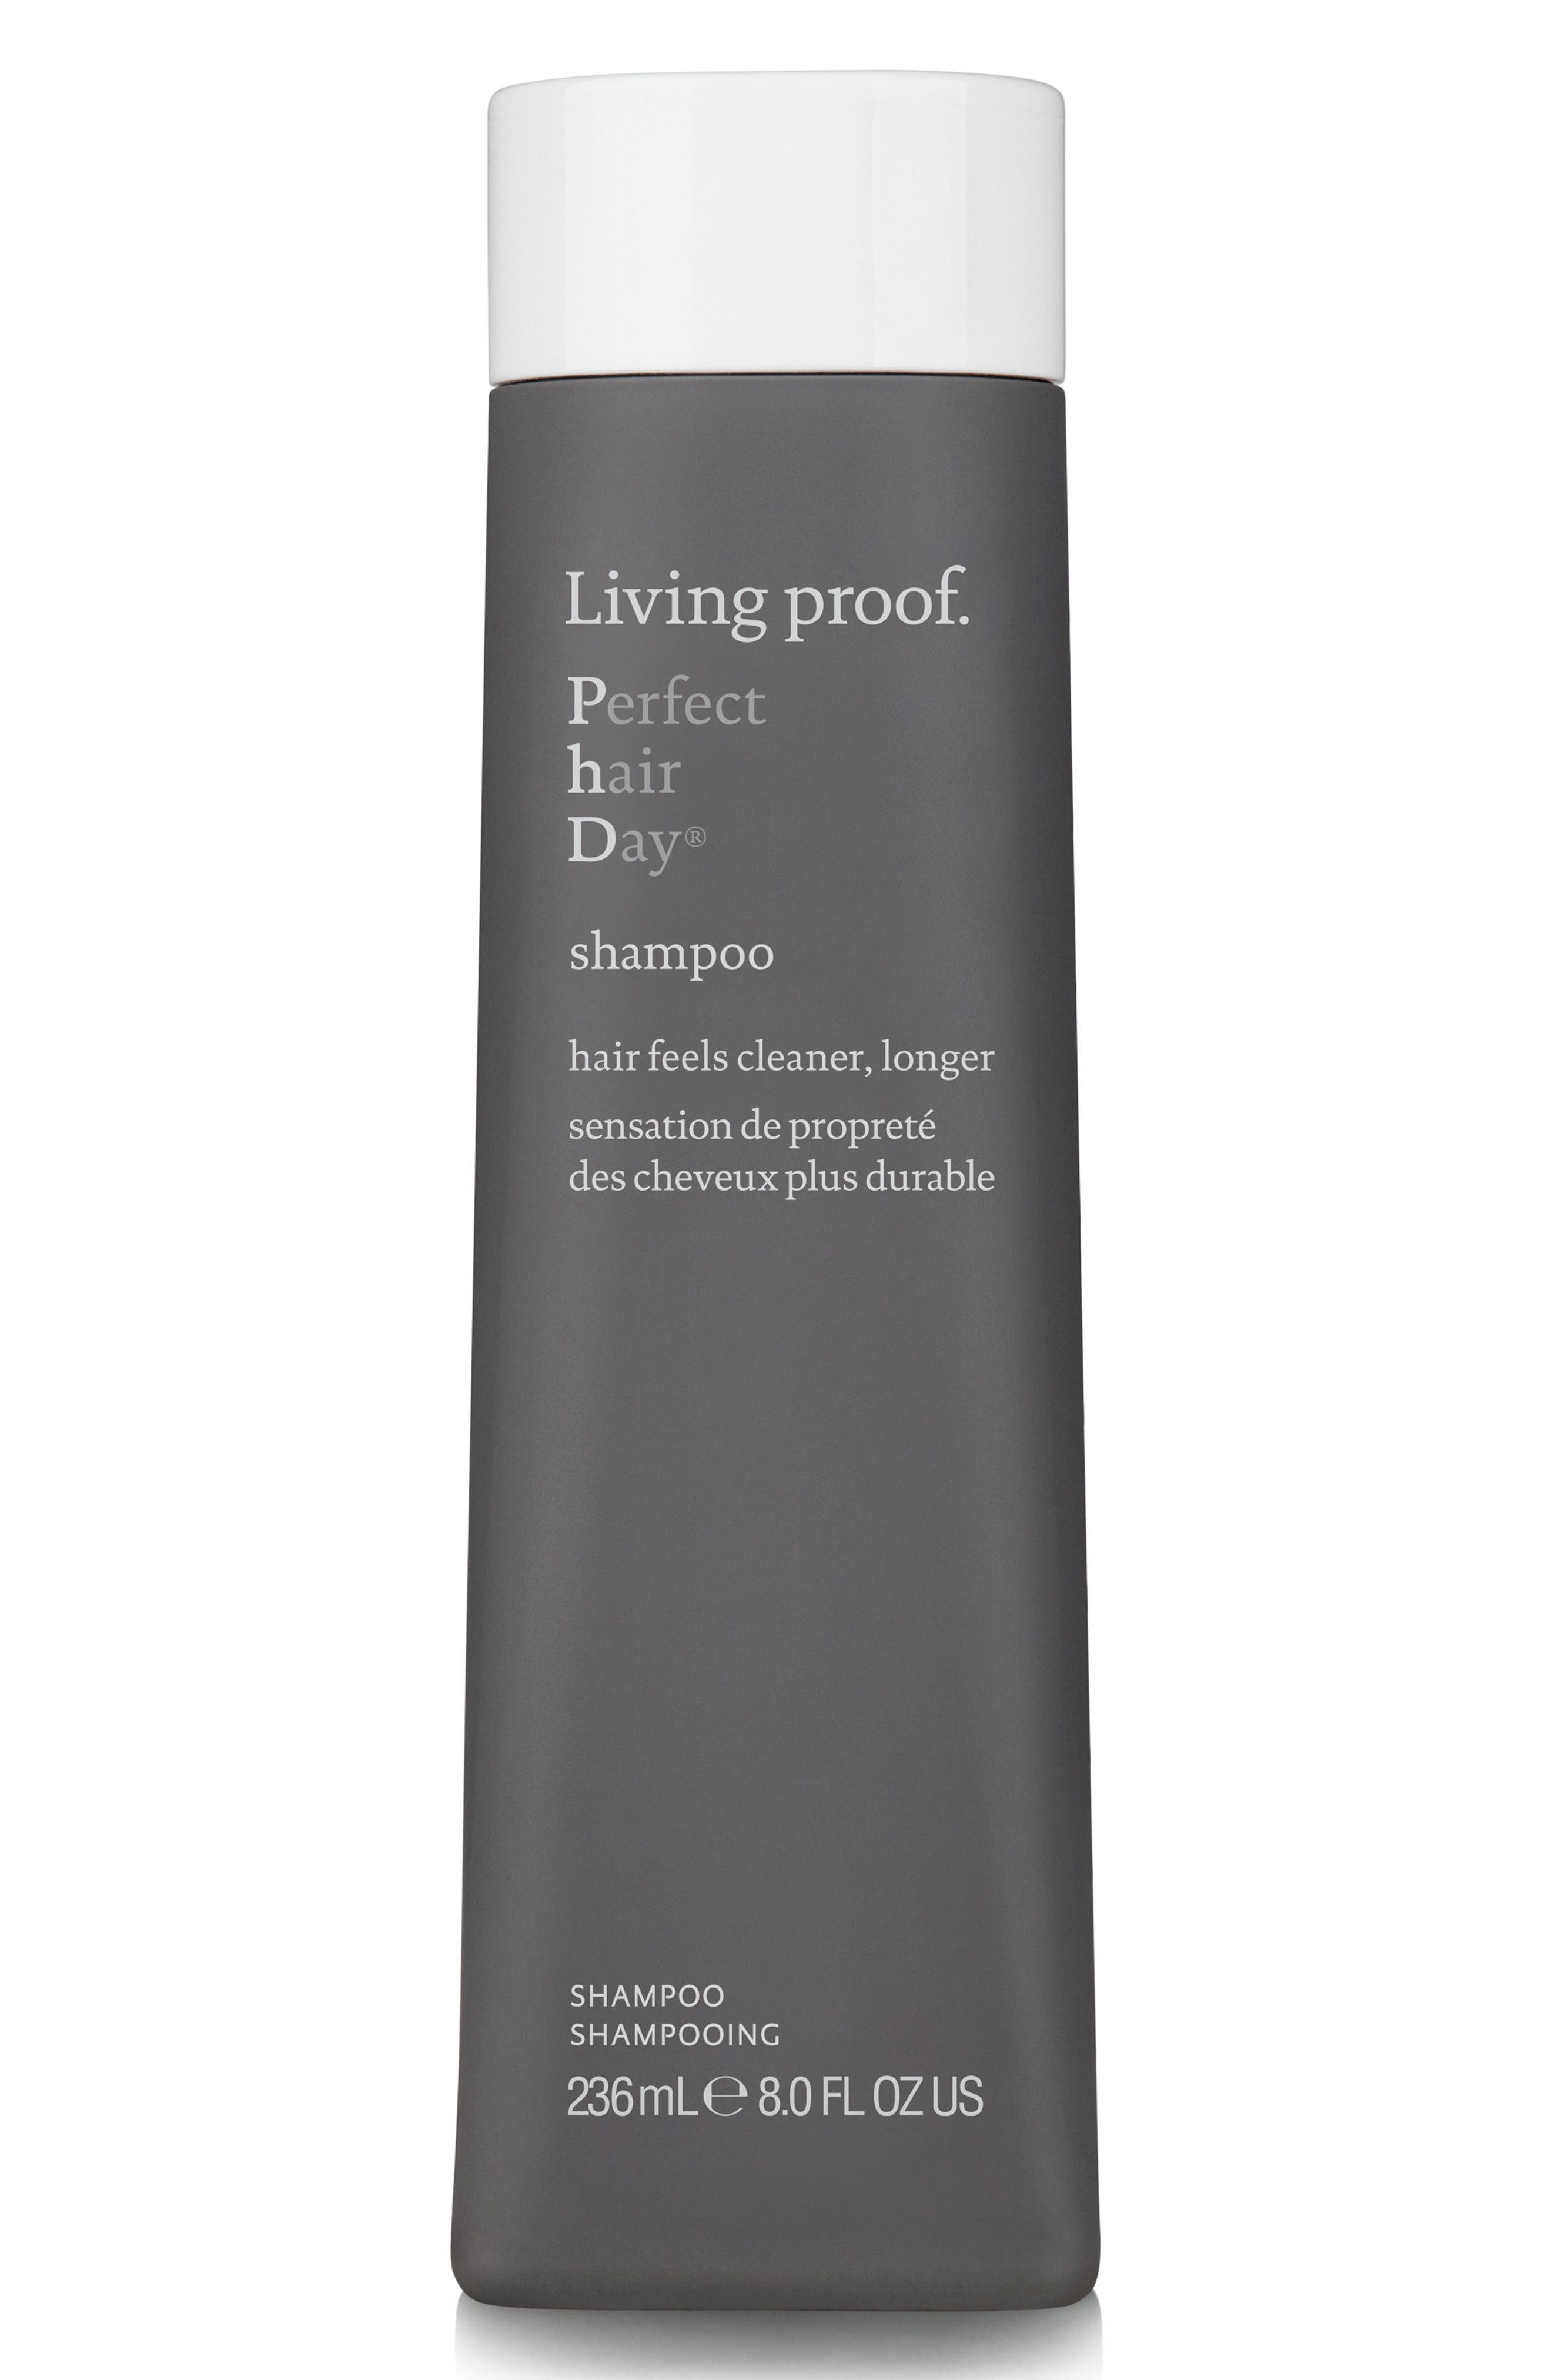 Alternate Image 1 Selected - Living proof® Perfect hair Day™ Shampoo